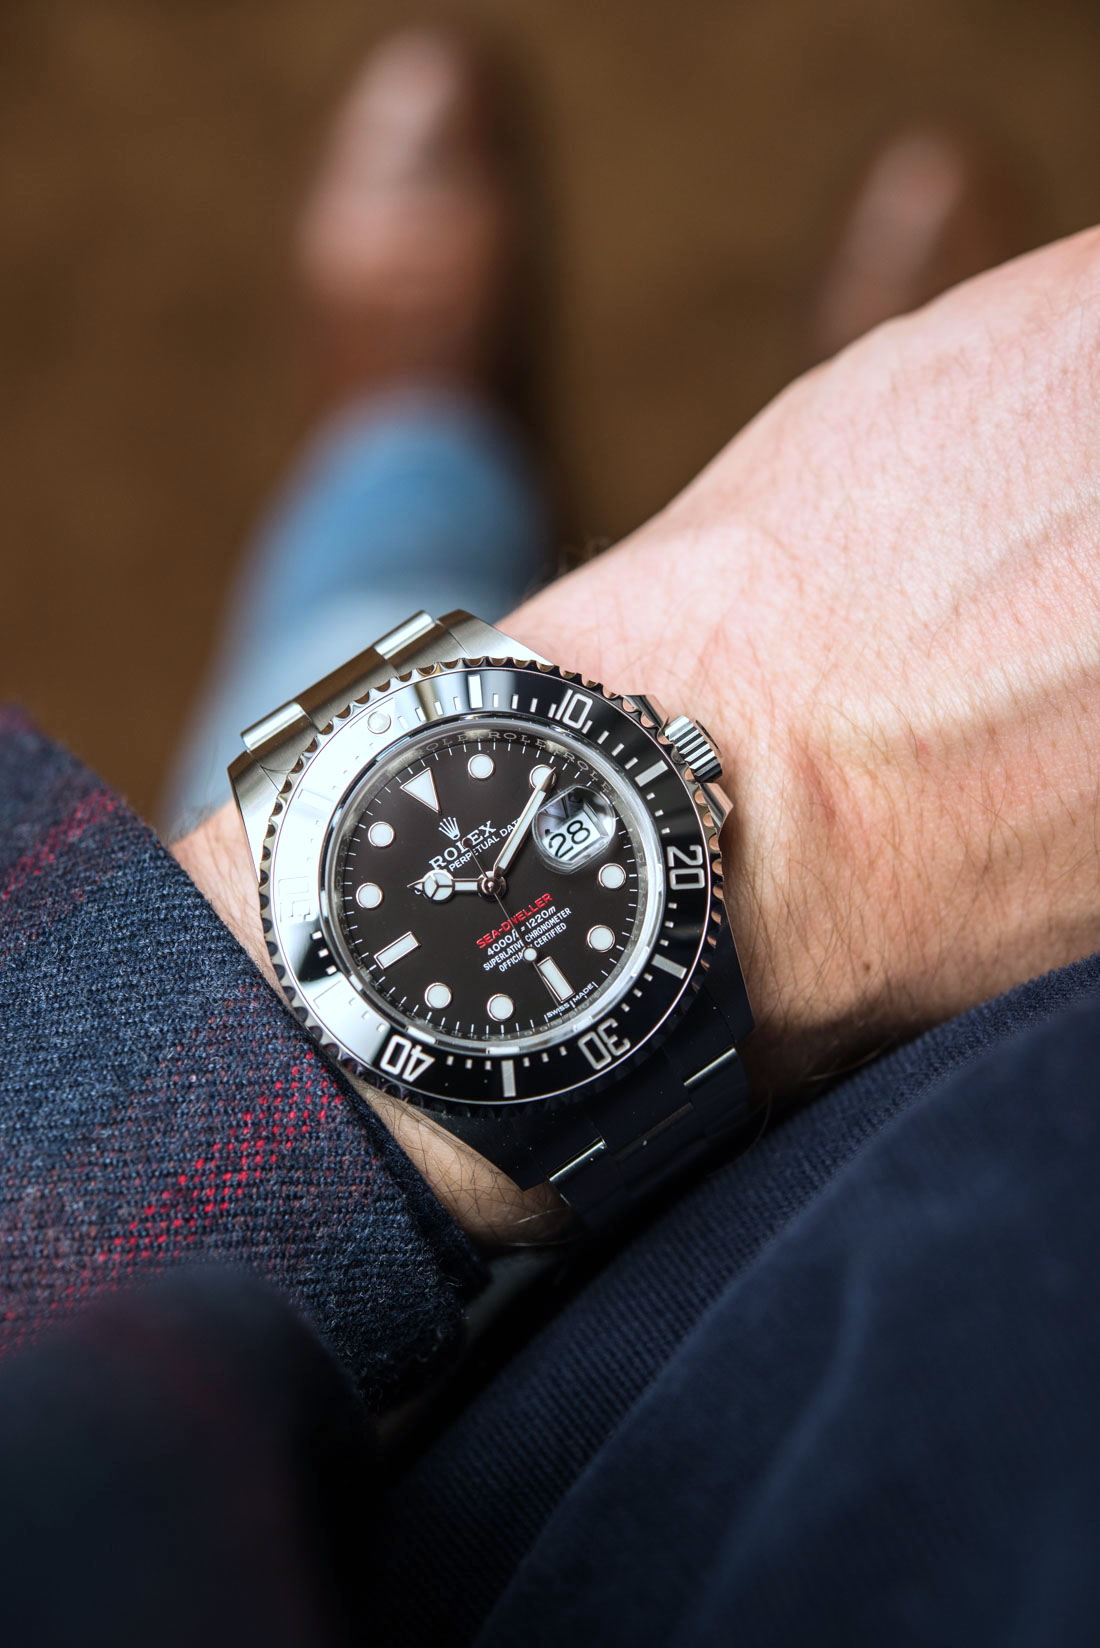 rolex-oyster-perpetual-sea-dweller-50th-anniversary-126600-ablogtowatch-61.jpg